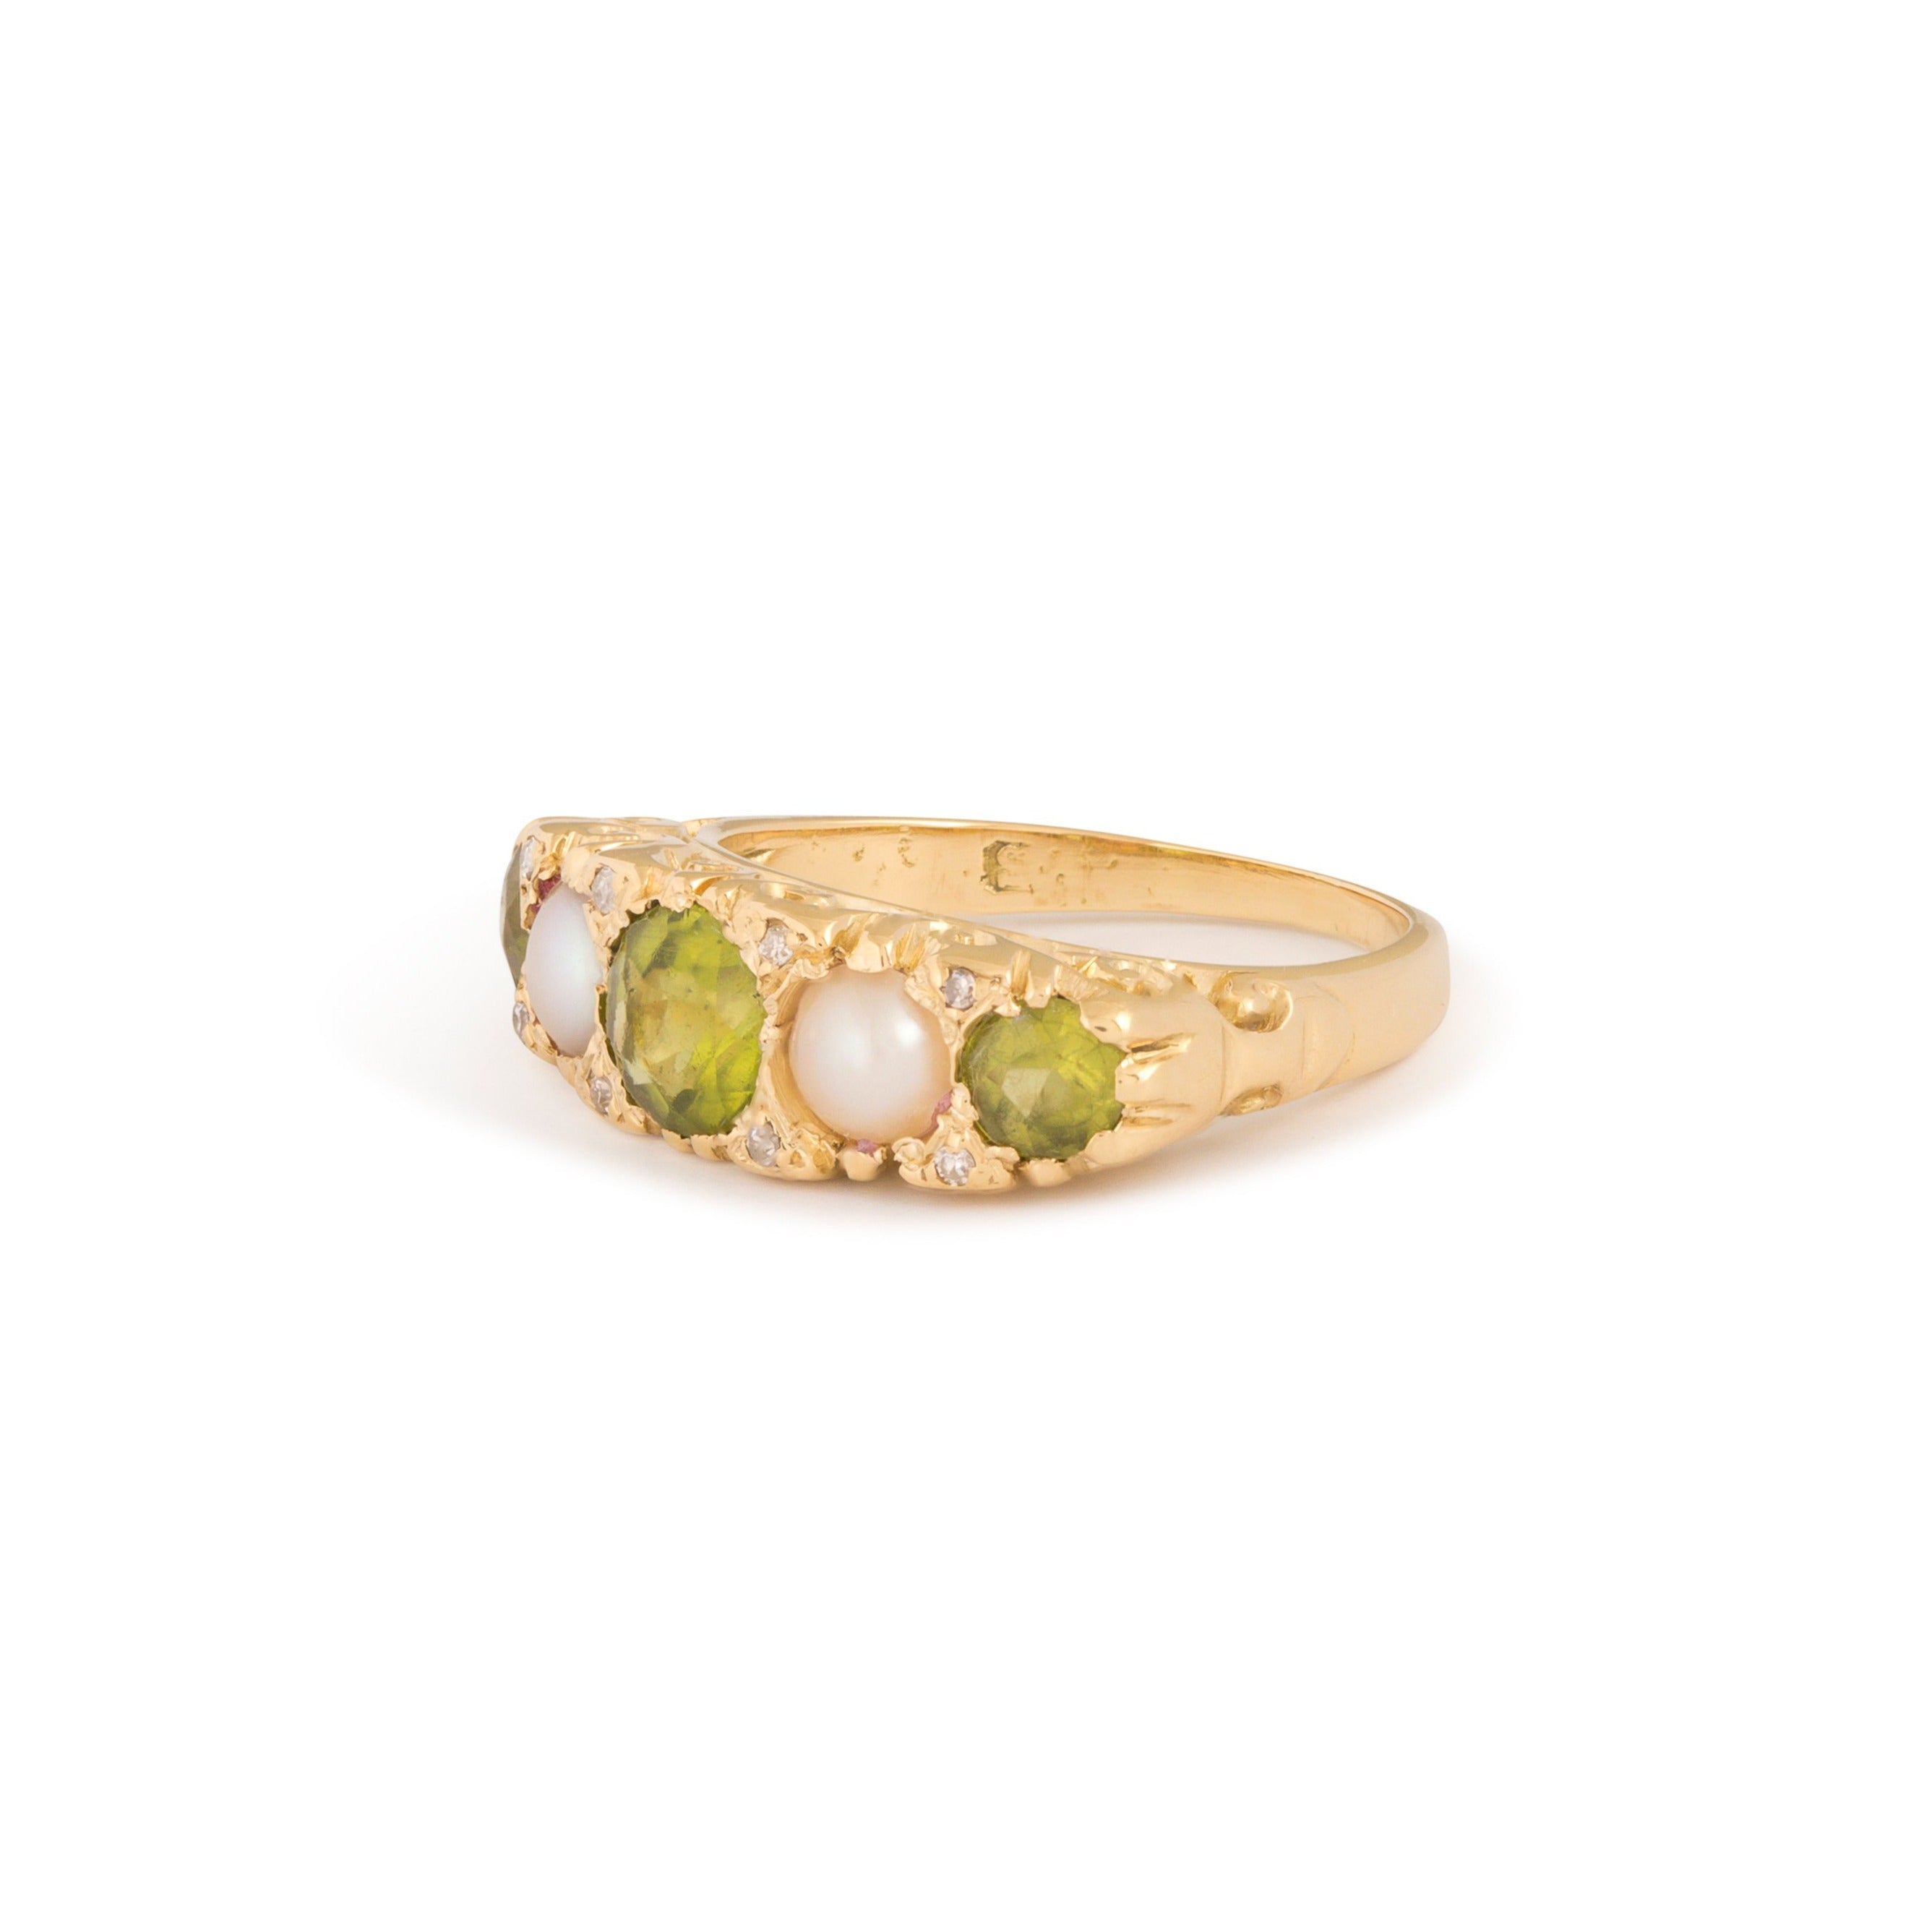 English Victorian Peridot, Pearl, and Diamond 14k Gold Ring